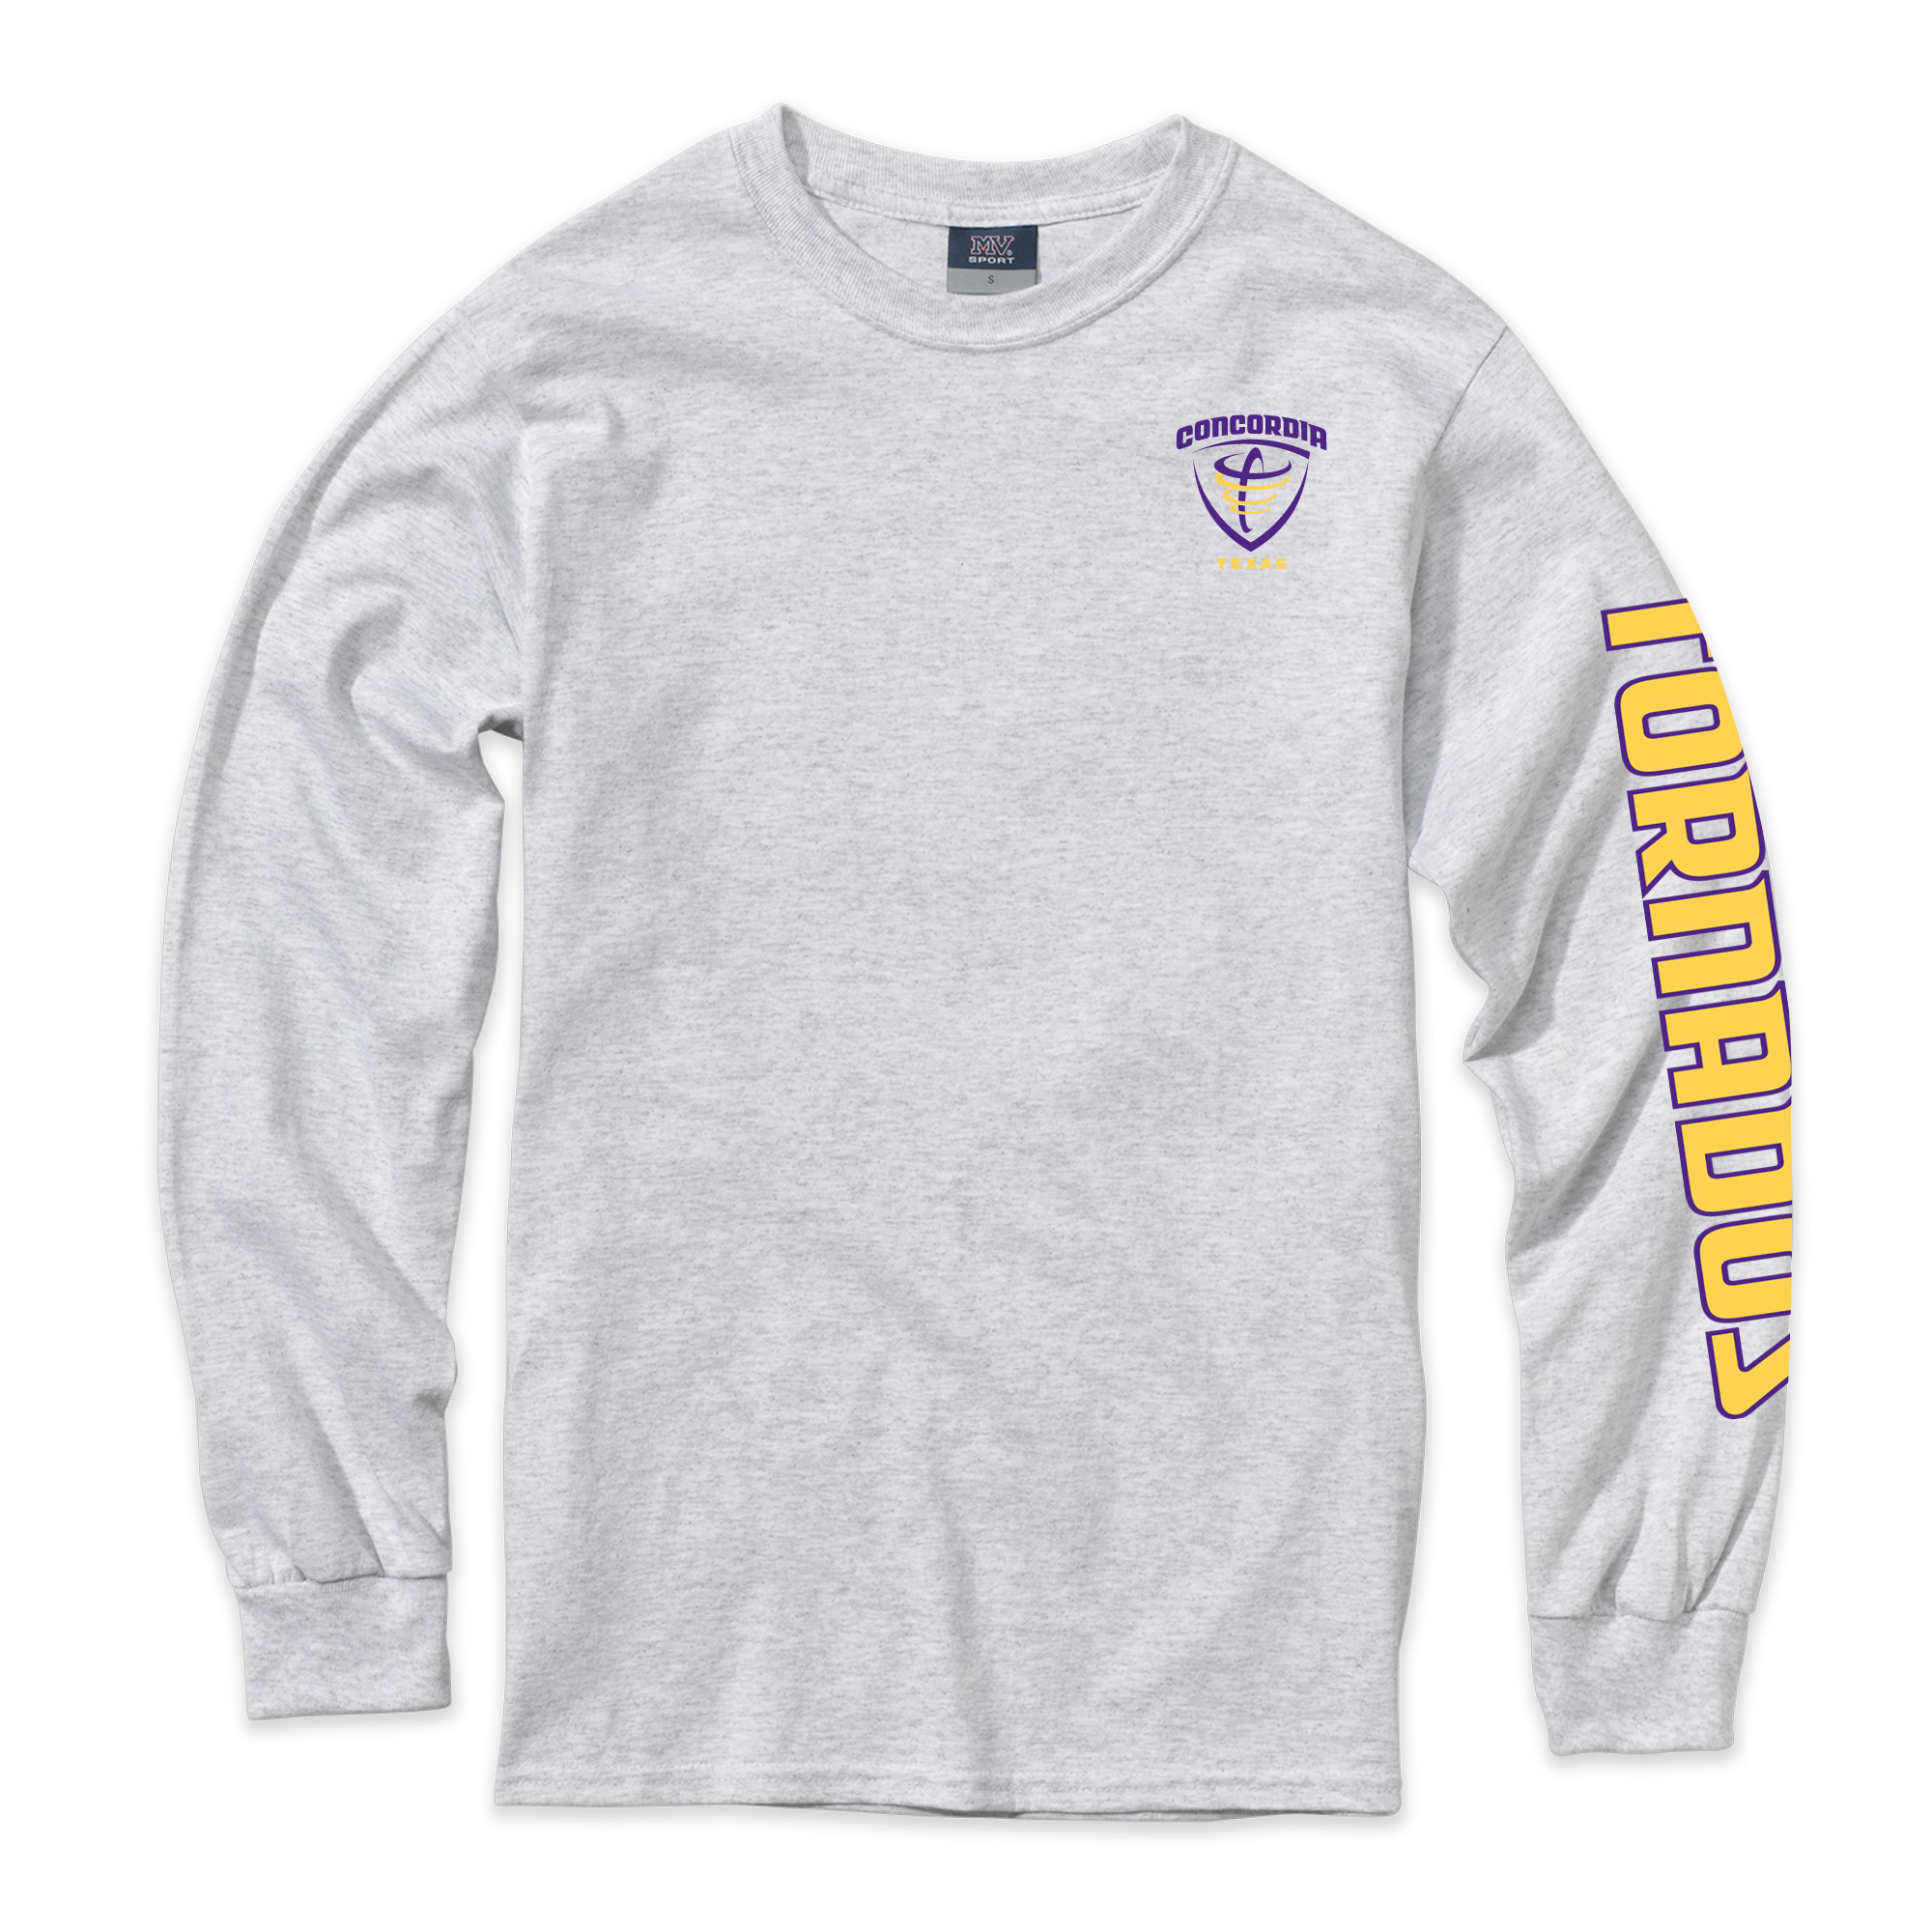 Classic Long Sleeve Tee - Marble Heather